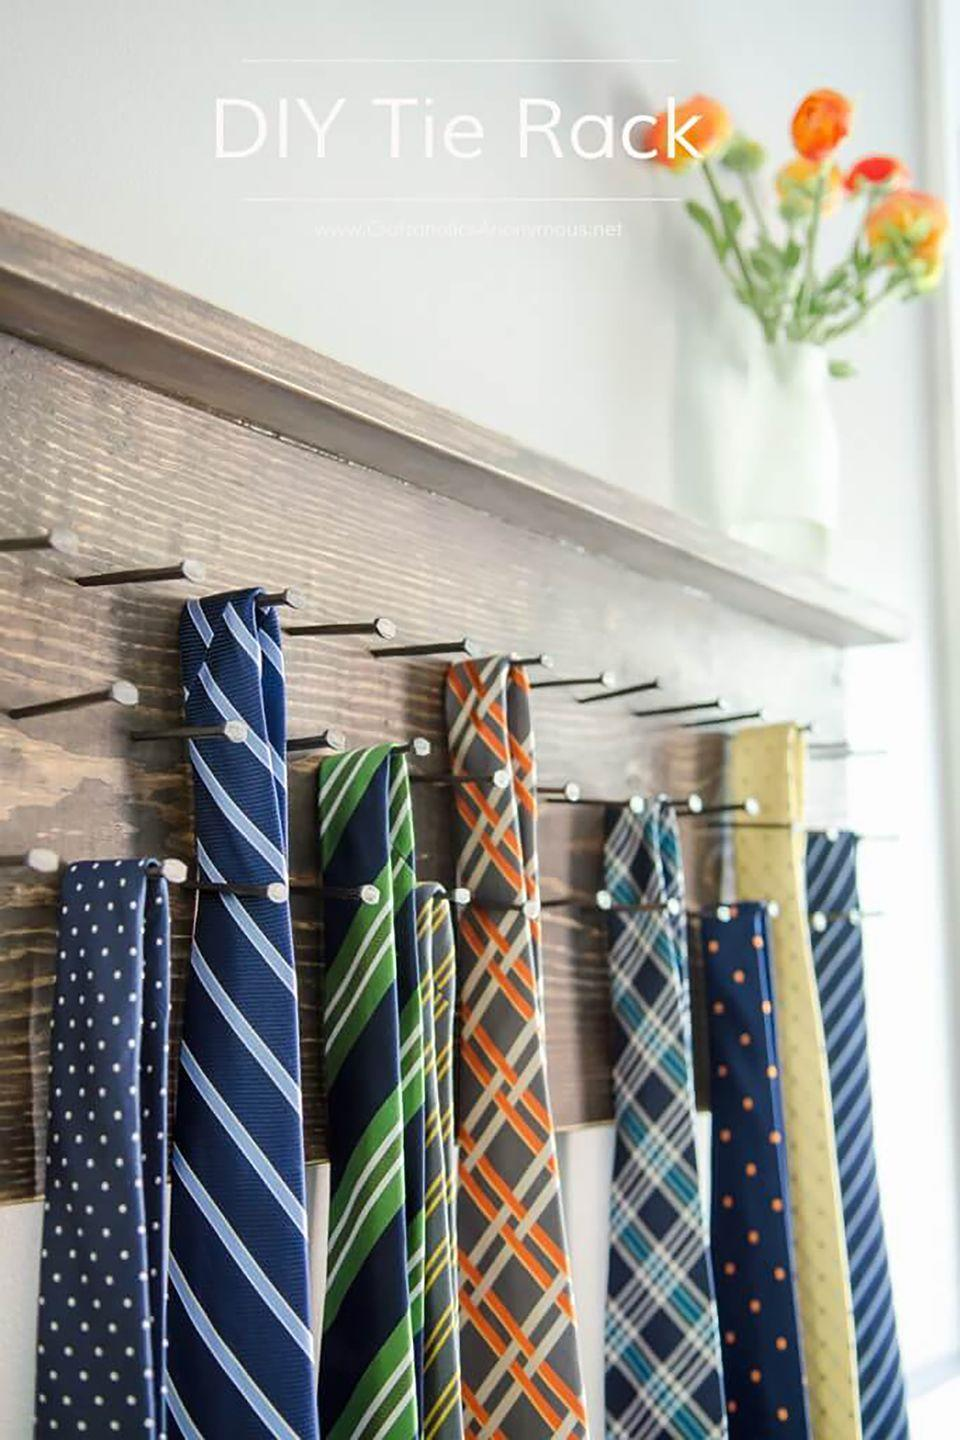 """<p>Help Dad get organized this Father's Day with a DIY tie rack that can hold more than 35 ties.<br></p><p><strong><em>Get the tutorial at <a href=""""http://www.craftaholicsanonymous.net/diy-tie-rack-tutorial"""" rel=""""nofollow noopener"""" target=""""_blank"""" data-ylk=""""slk:Craftaholics Anonymous"""" class=""""link rapid-noclick-resp"""">Craftaholics Anonymous</a>. </em></strong></p><p><strong>What You'll Need:</strong> <a href=""""https://www.amazon.com/gp/product/B00714LKAC/"""" rel=""""nofollow noopener"""" target=""""_blank"""" data-ylk=""""slk:Wood stain"""" class=""""link rapid-noclick-resp"""">Wood stain</a> ($19, Amazon);<a href=""""https://www.amazon.com/gp/product/B000FPCGAW/"""" rel=""""nofollow noopener"""" target=""""_blank"""" data-ylk=""""slk:old-fashioned nails"""" class=""""link rapid-noclick-resp""""> old-fashioned nails</a> ($6, Amazon); <a href=""""https://www.amazon.com/gp/product/B07BK9SV2V/"""" rel=""""nofollow noopener"""" target=""""_blank"""" data-ylk=""""slk:brad nailer"""" class=""""link rapid-noclick-resp"""">brad nailer</a> ($100, Amazon)</p>"""